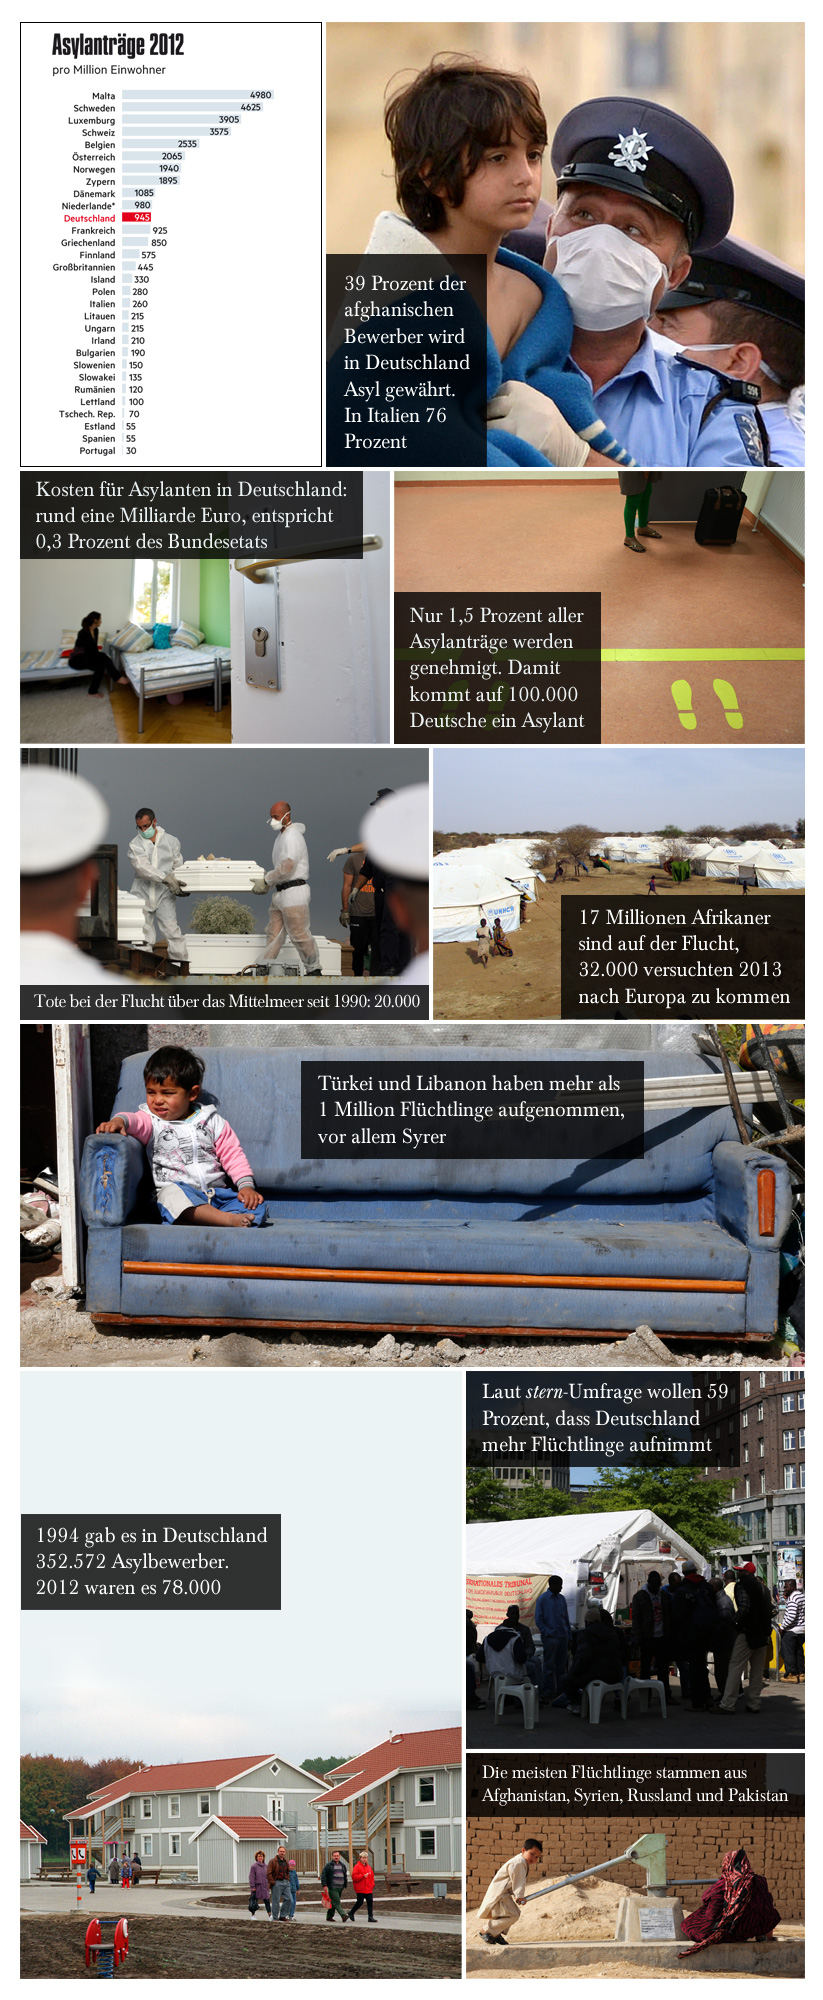 10 Facts about Asylum in Germany